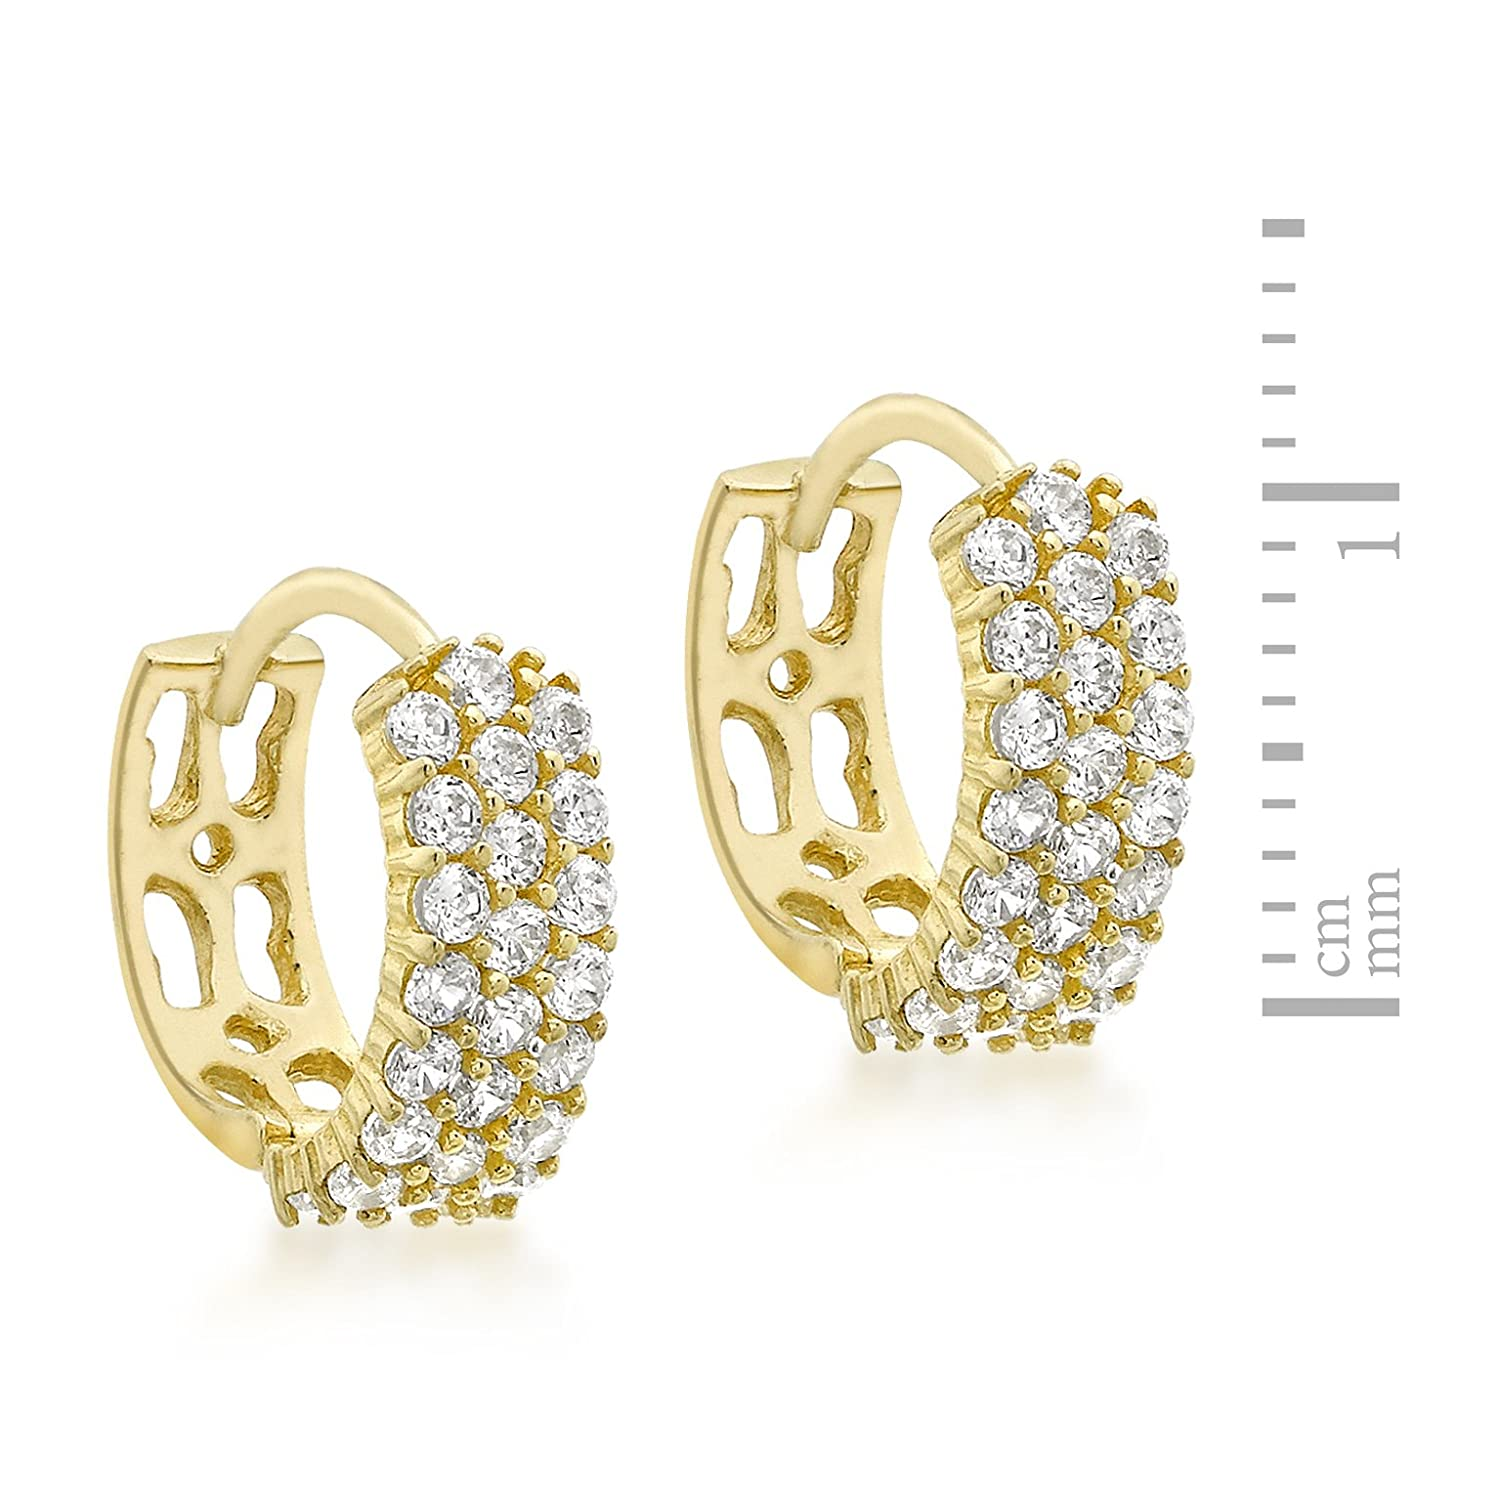 68eb1aeb9 Carissima Gold 9ct Yellow Gold 12mm Cubic Zirconia Pave Set Huggy Earrings:  Amazon.co.uk: Jewellery